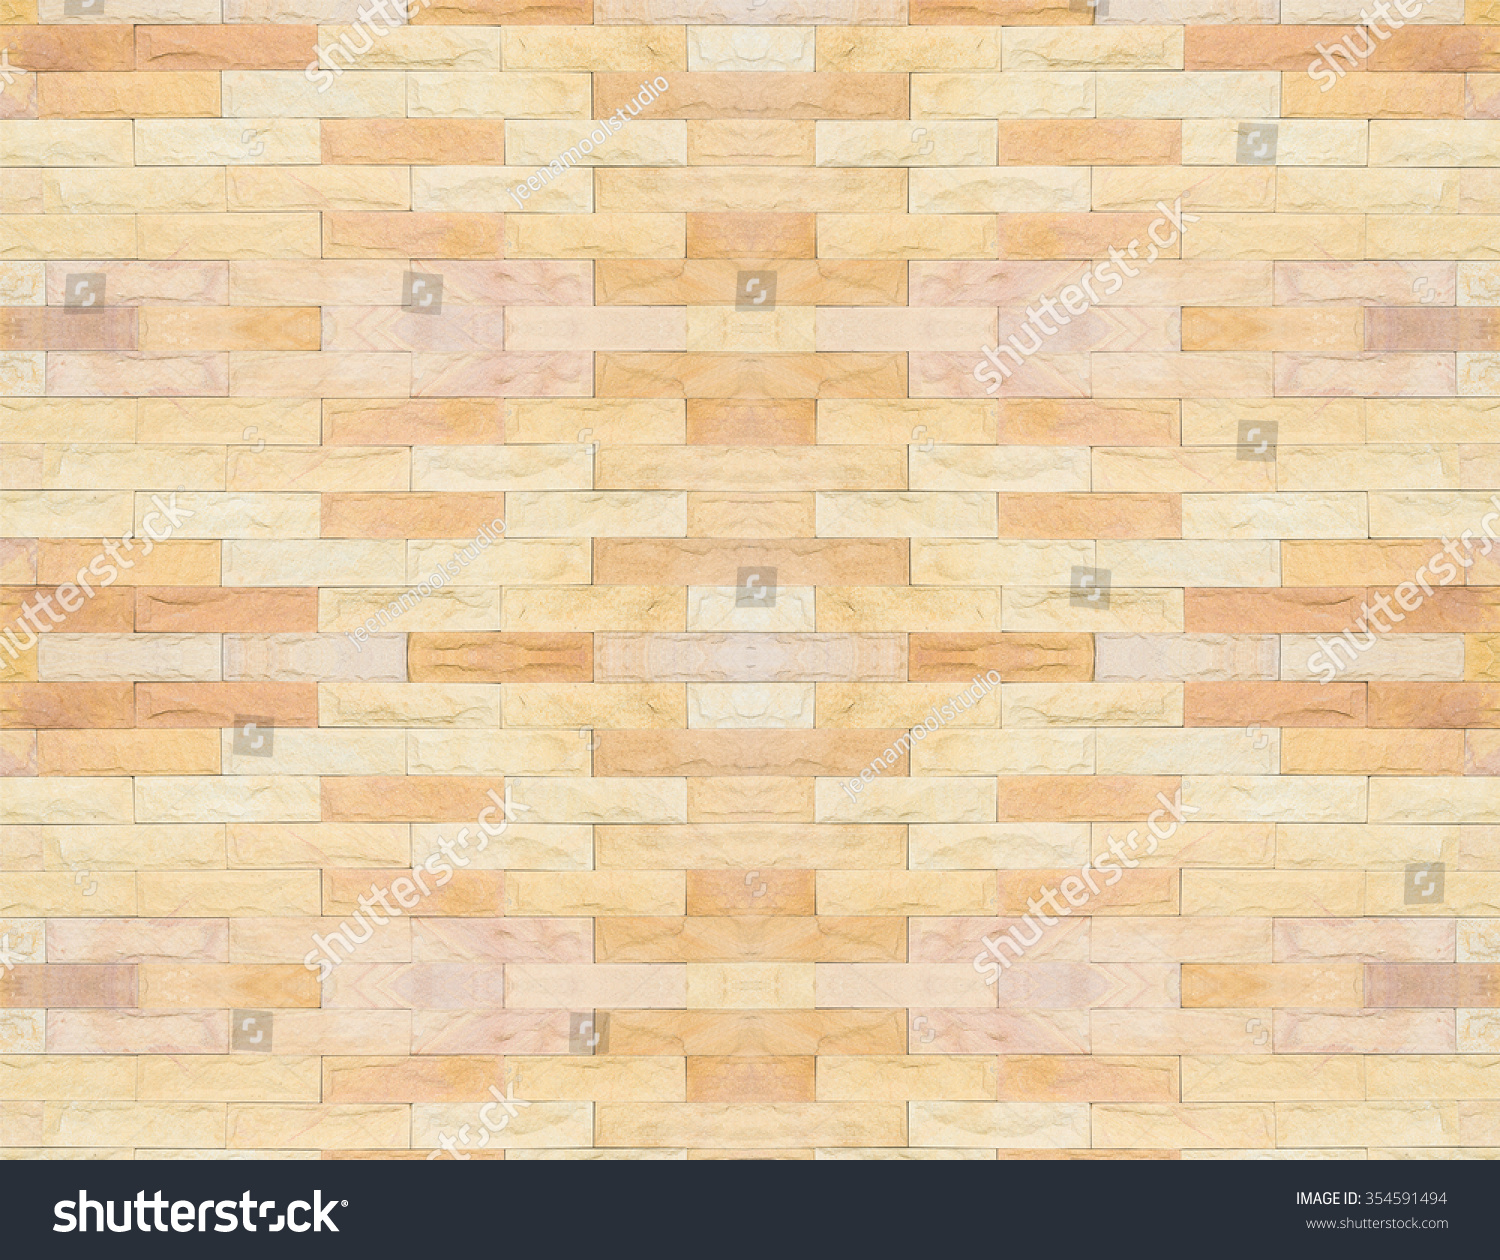 Brick Wall Beautiful Color Texture Background Stock Photo & Image ...